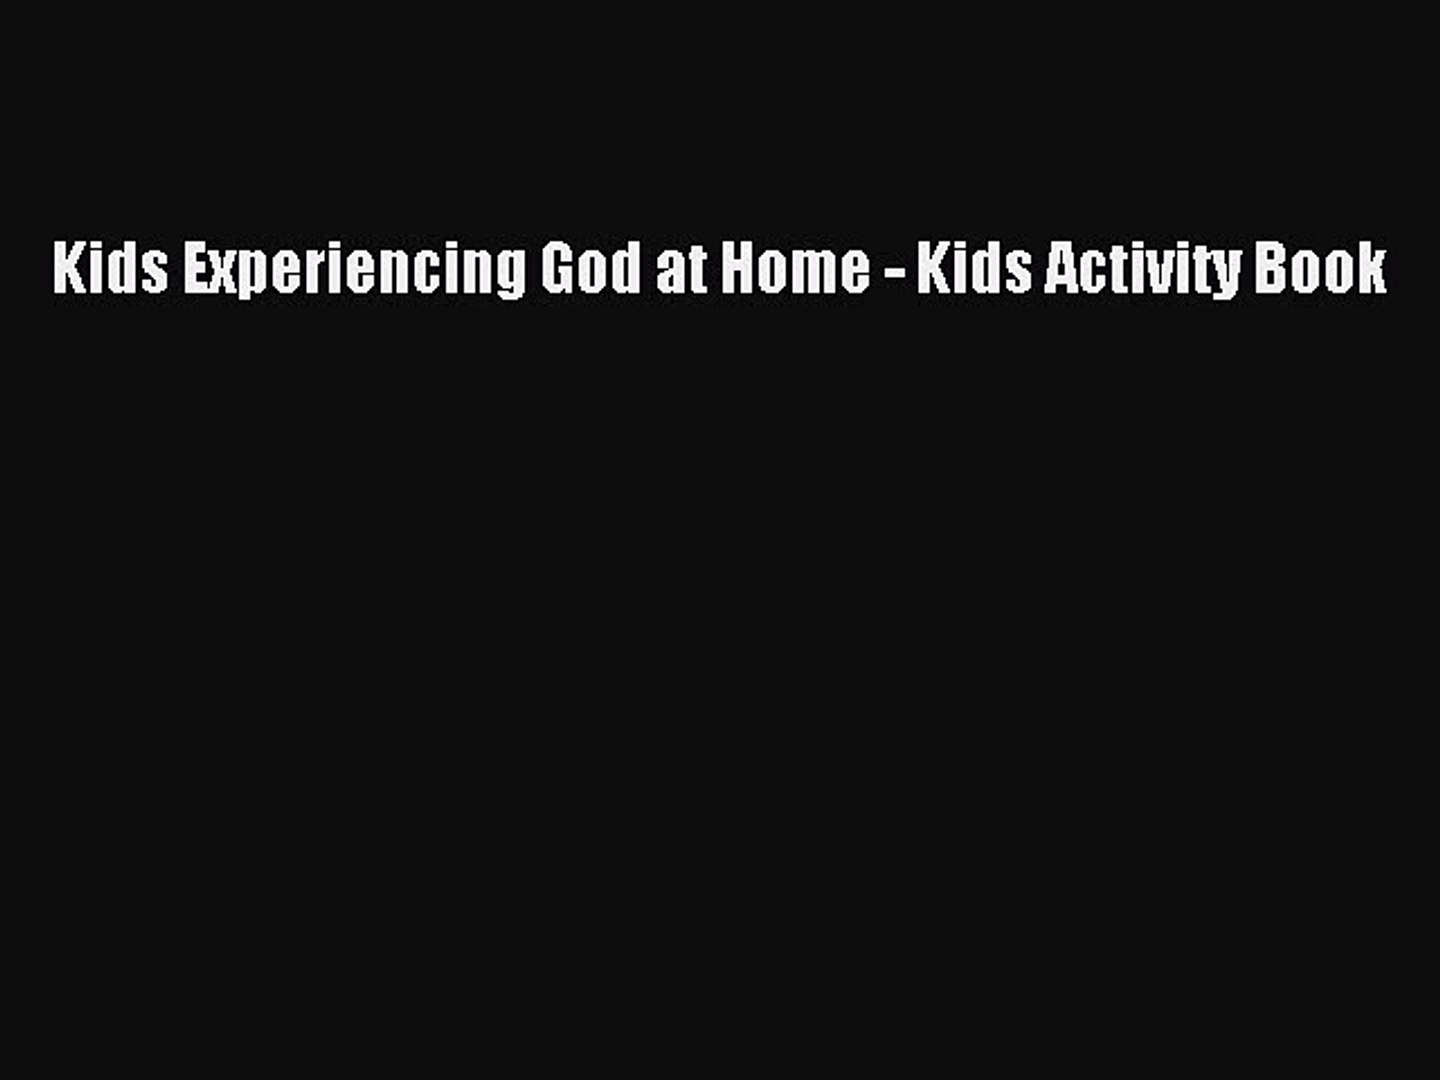 Book Kids Experiencing God at Home - Kids Activity Book Read Full Ebook